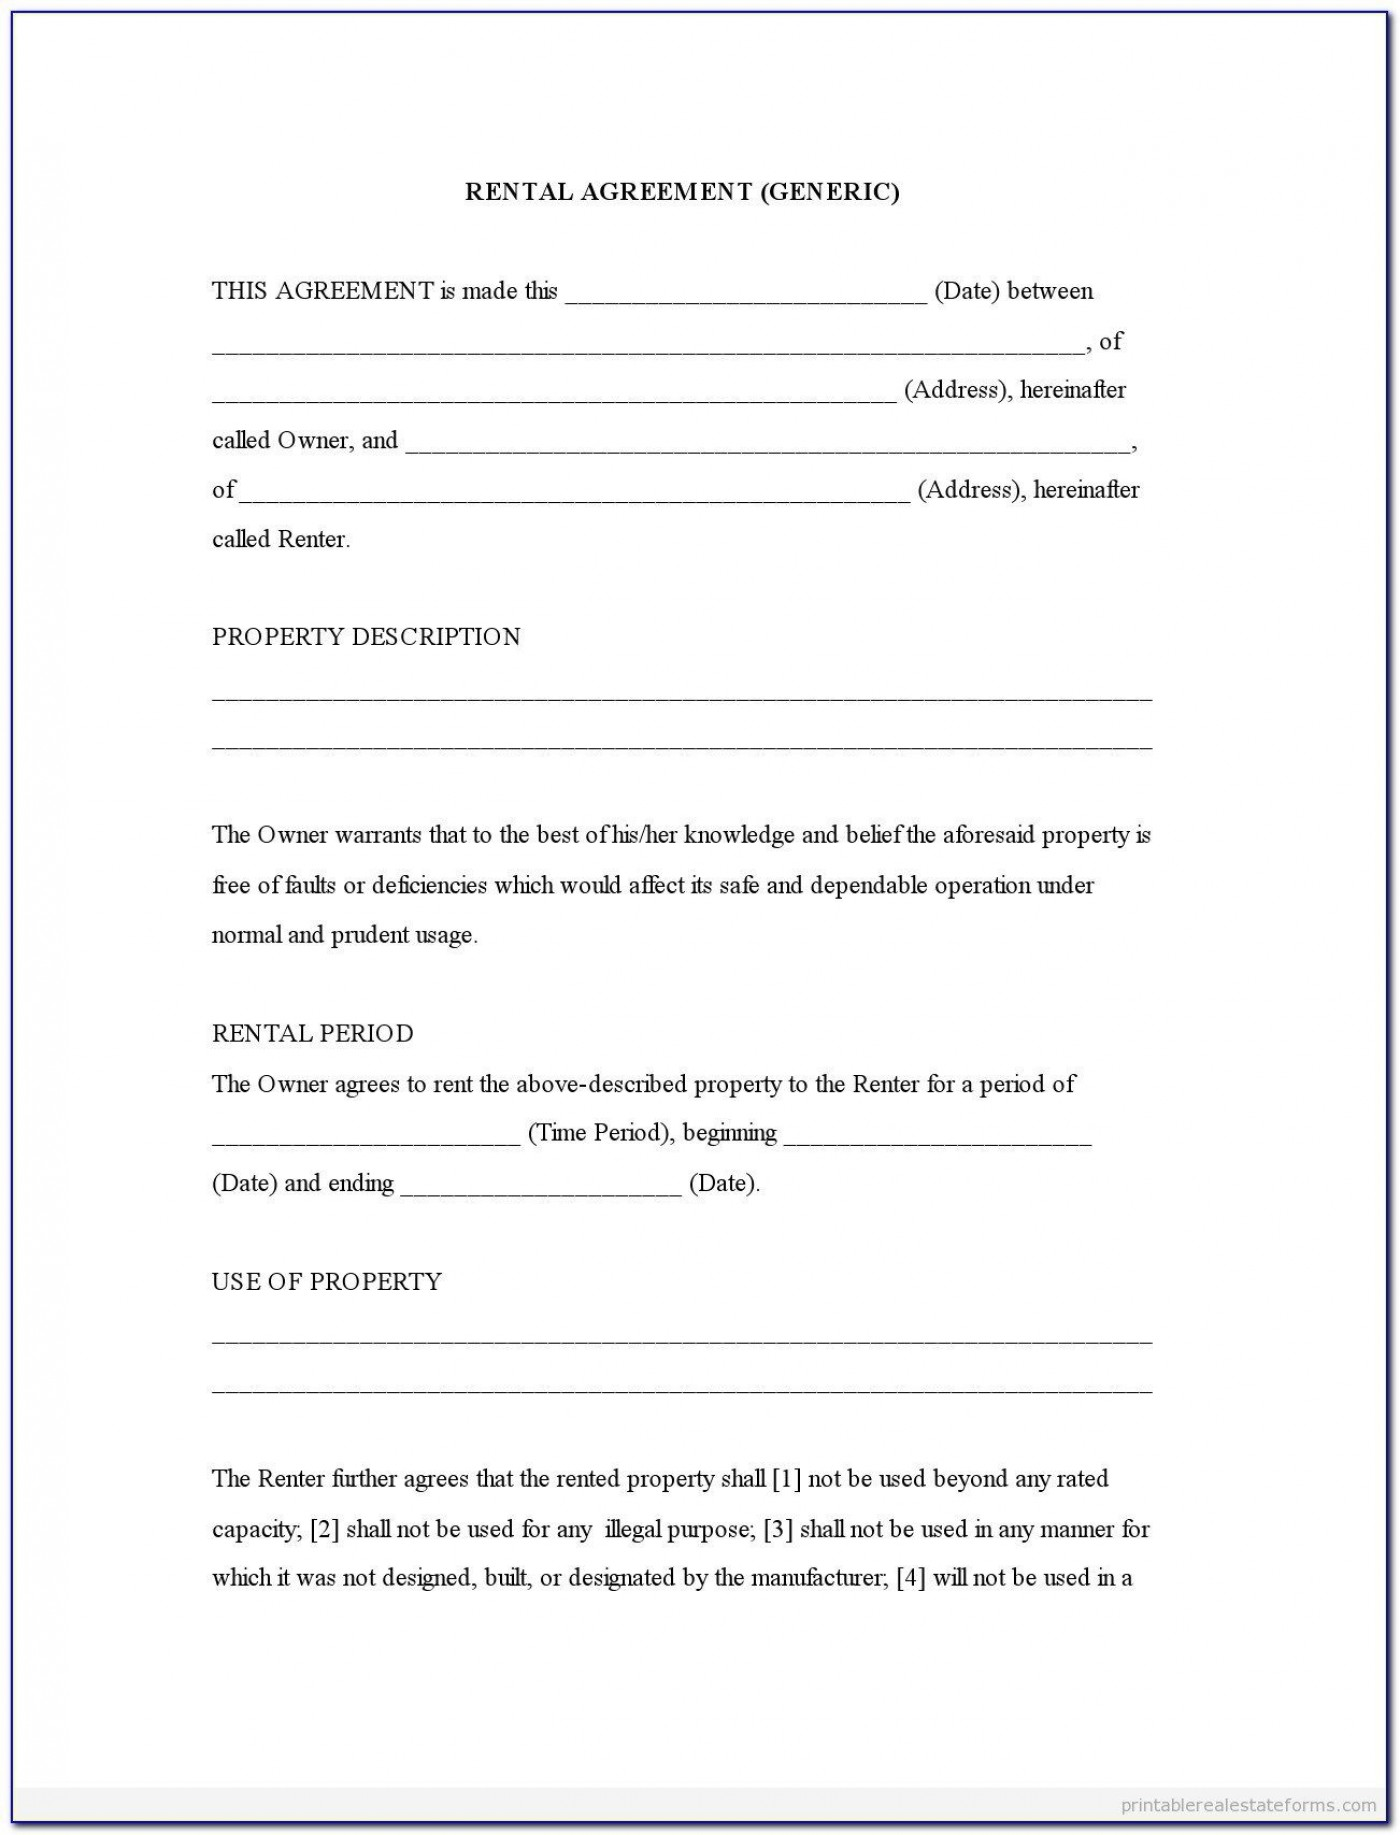 004 Exceptional Rental Agreement Template Word Free Picture  Room Doc In Tamil Format Download1400